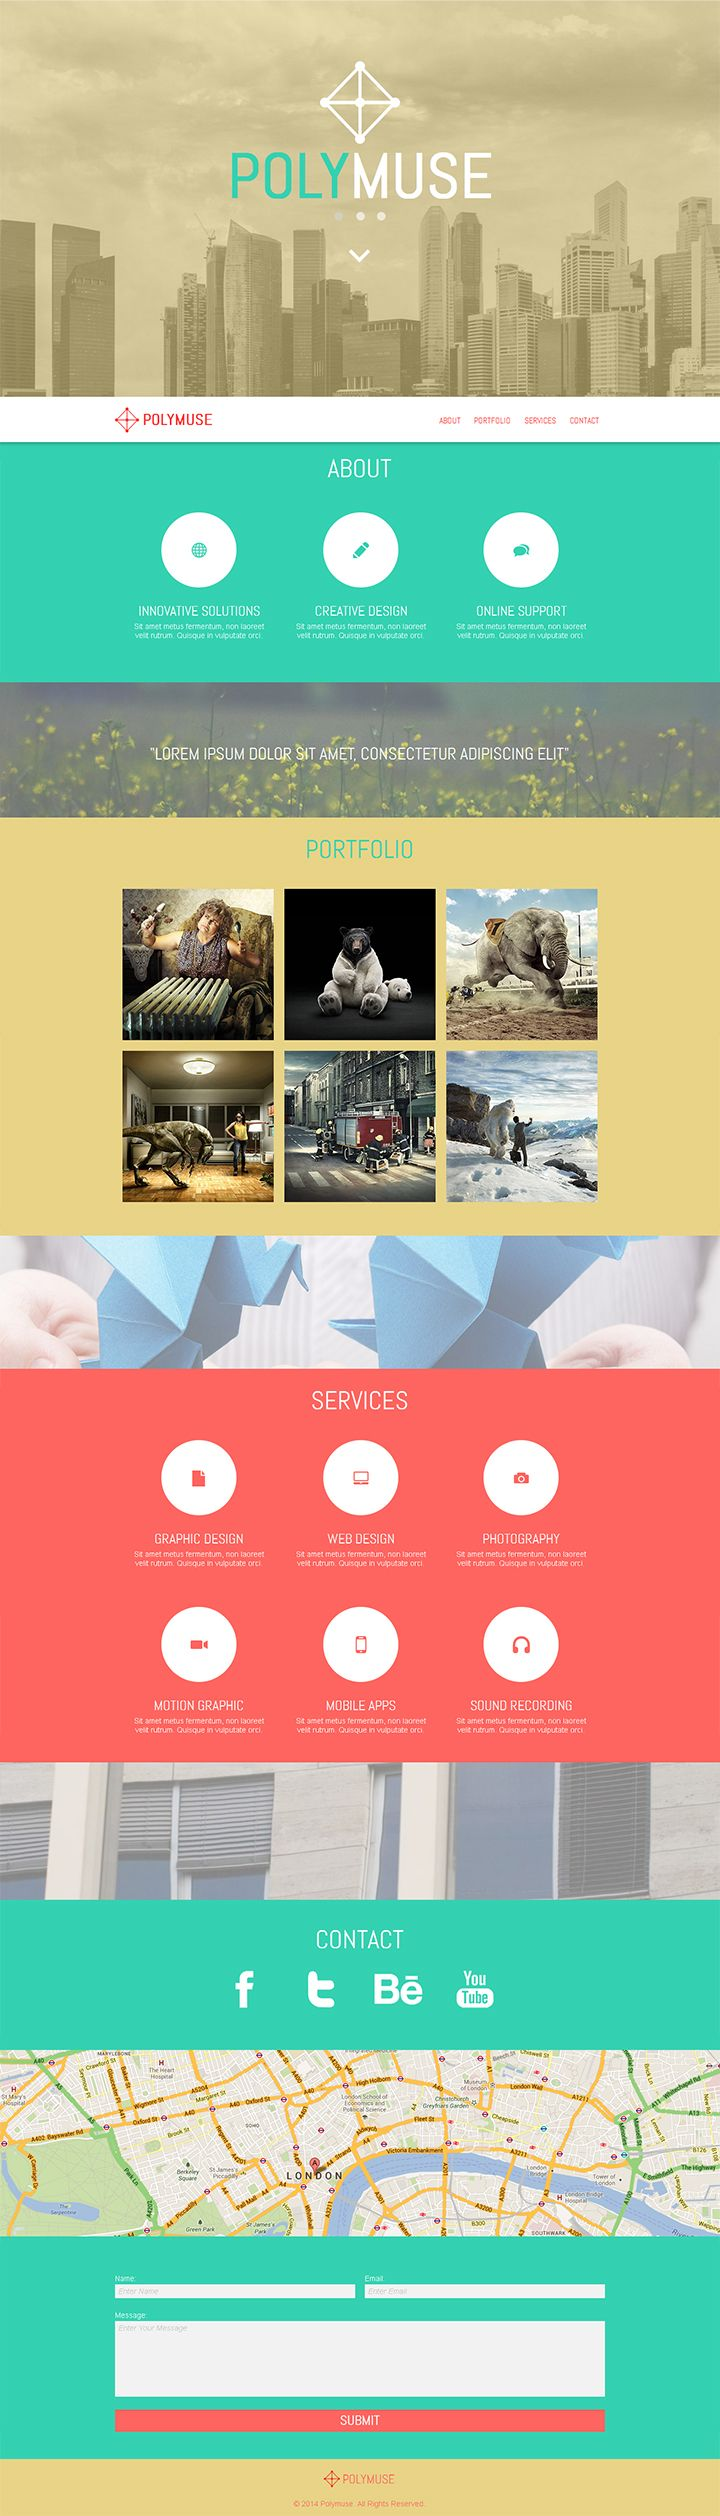 Polymuse - One Page Parallax Muse Template by PixelladyArt